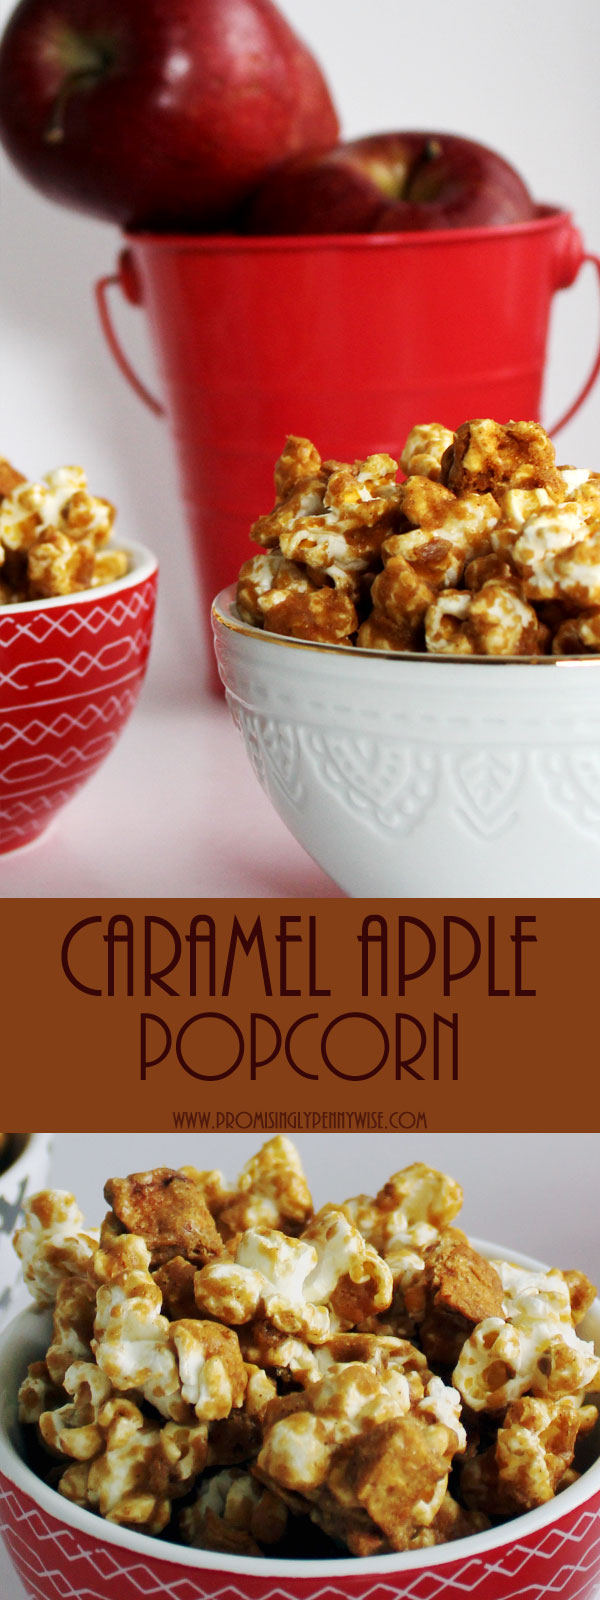 Homemade Caramel Apple Popcorn: Caramel apples and caramel popcorn combine in this homemade, corn syrup free oven baked treat!